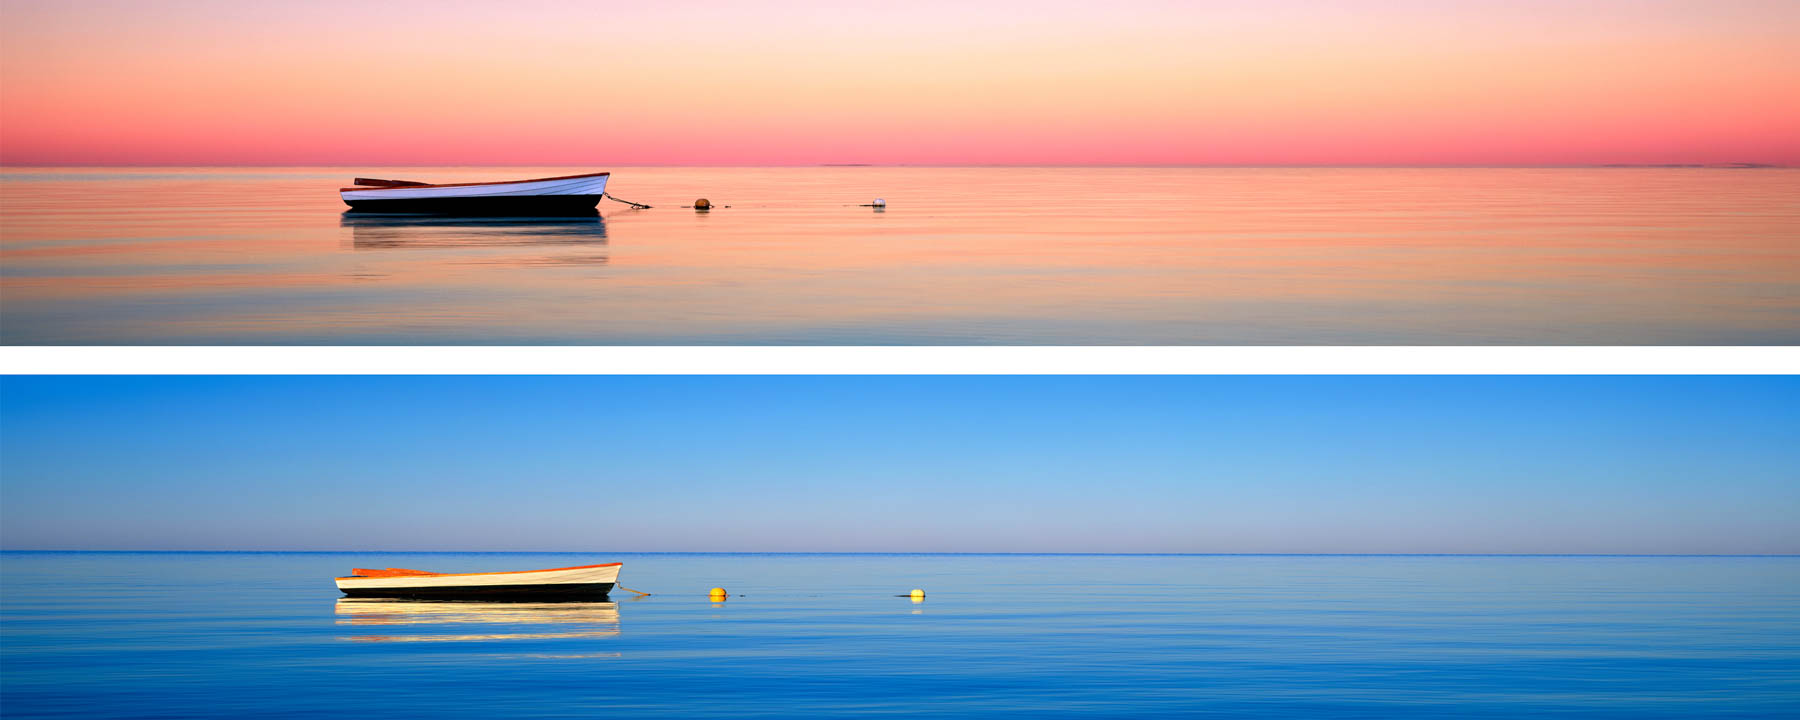 Composite of 2 photos shot at different times of a small dinghy in Shark Bay, WA, Australia.